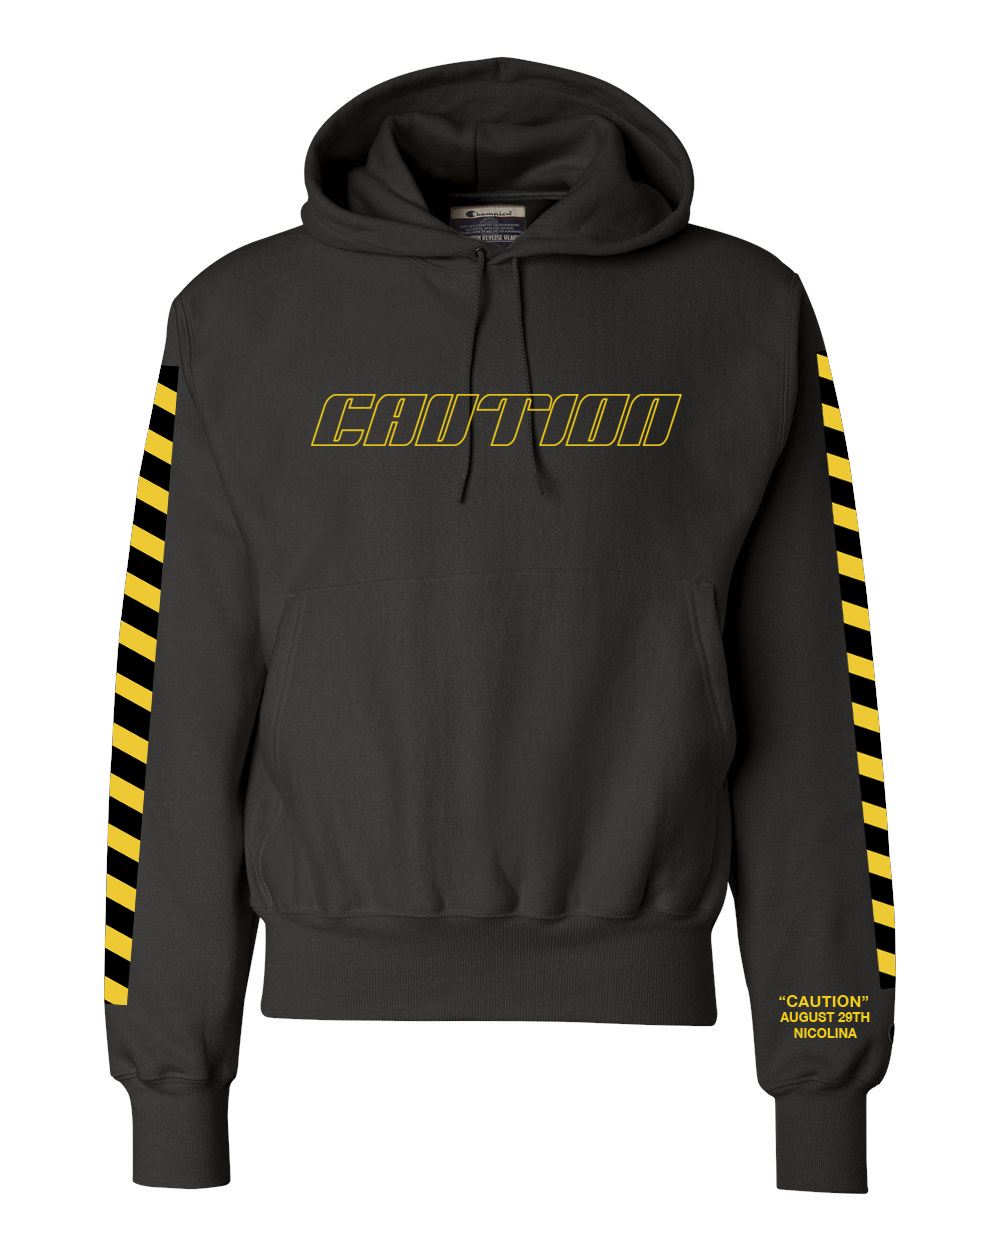 CAUTION HOODIE + DIGITAL ALBUM